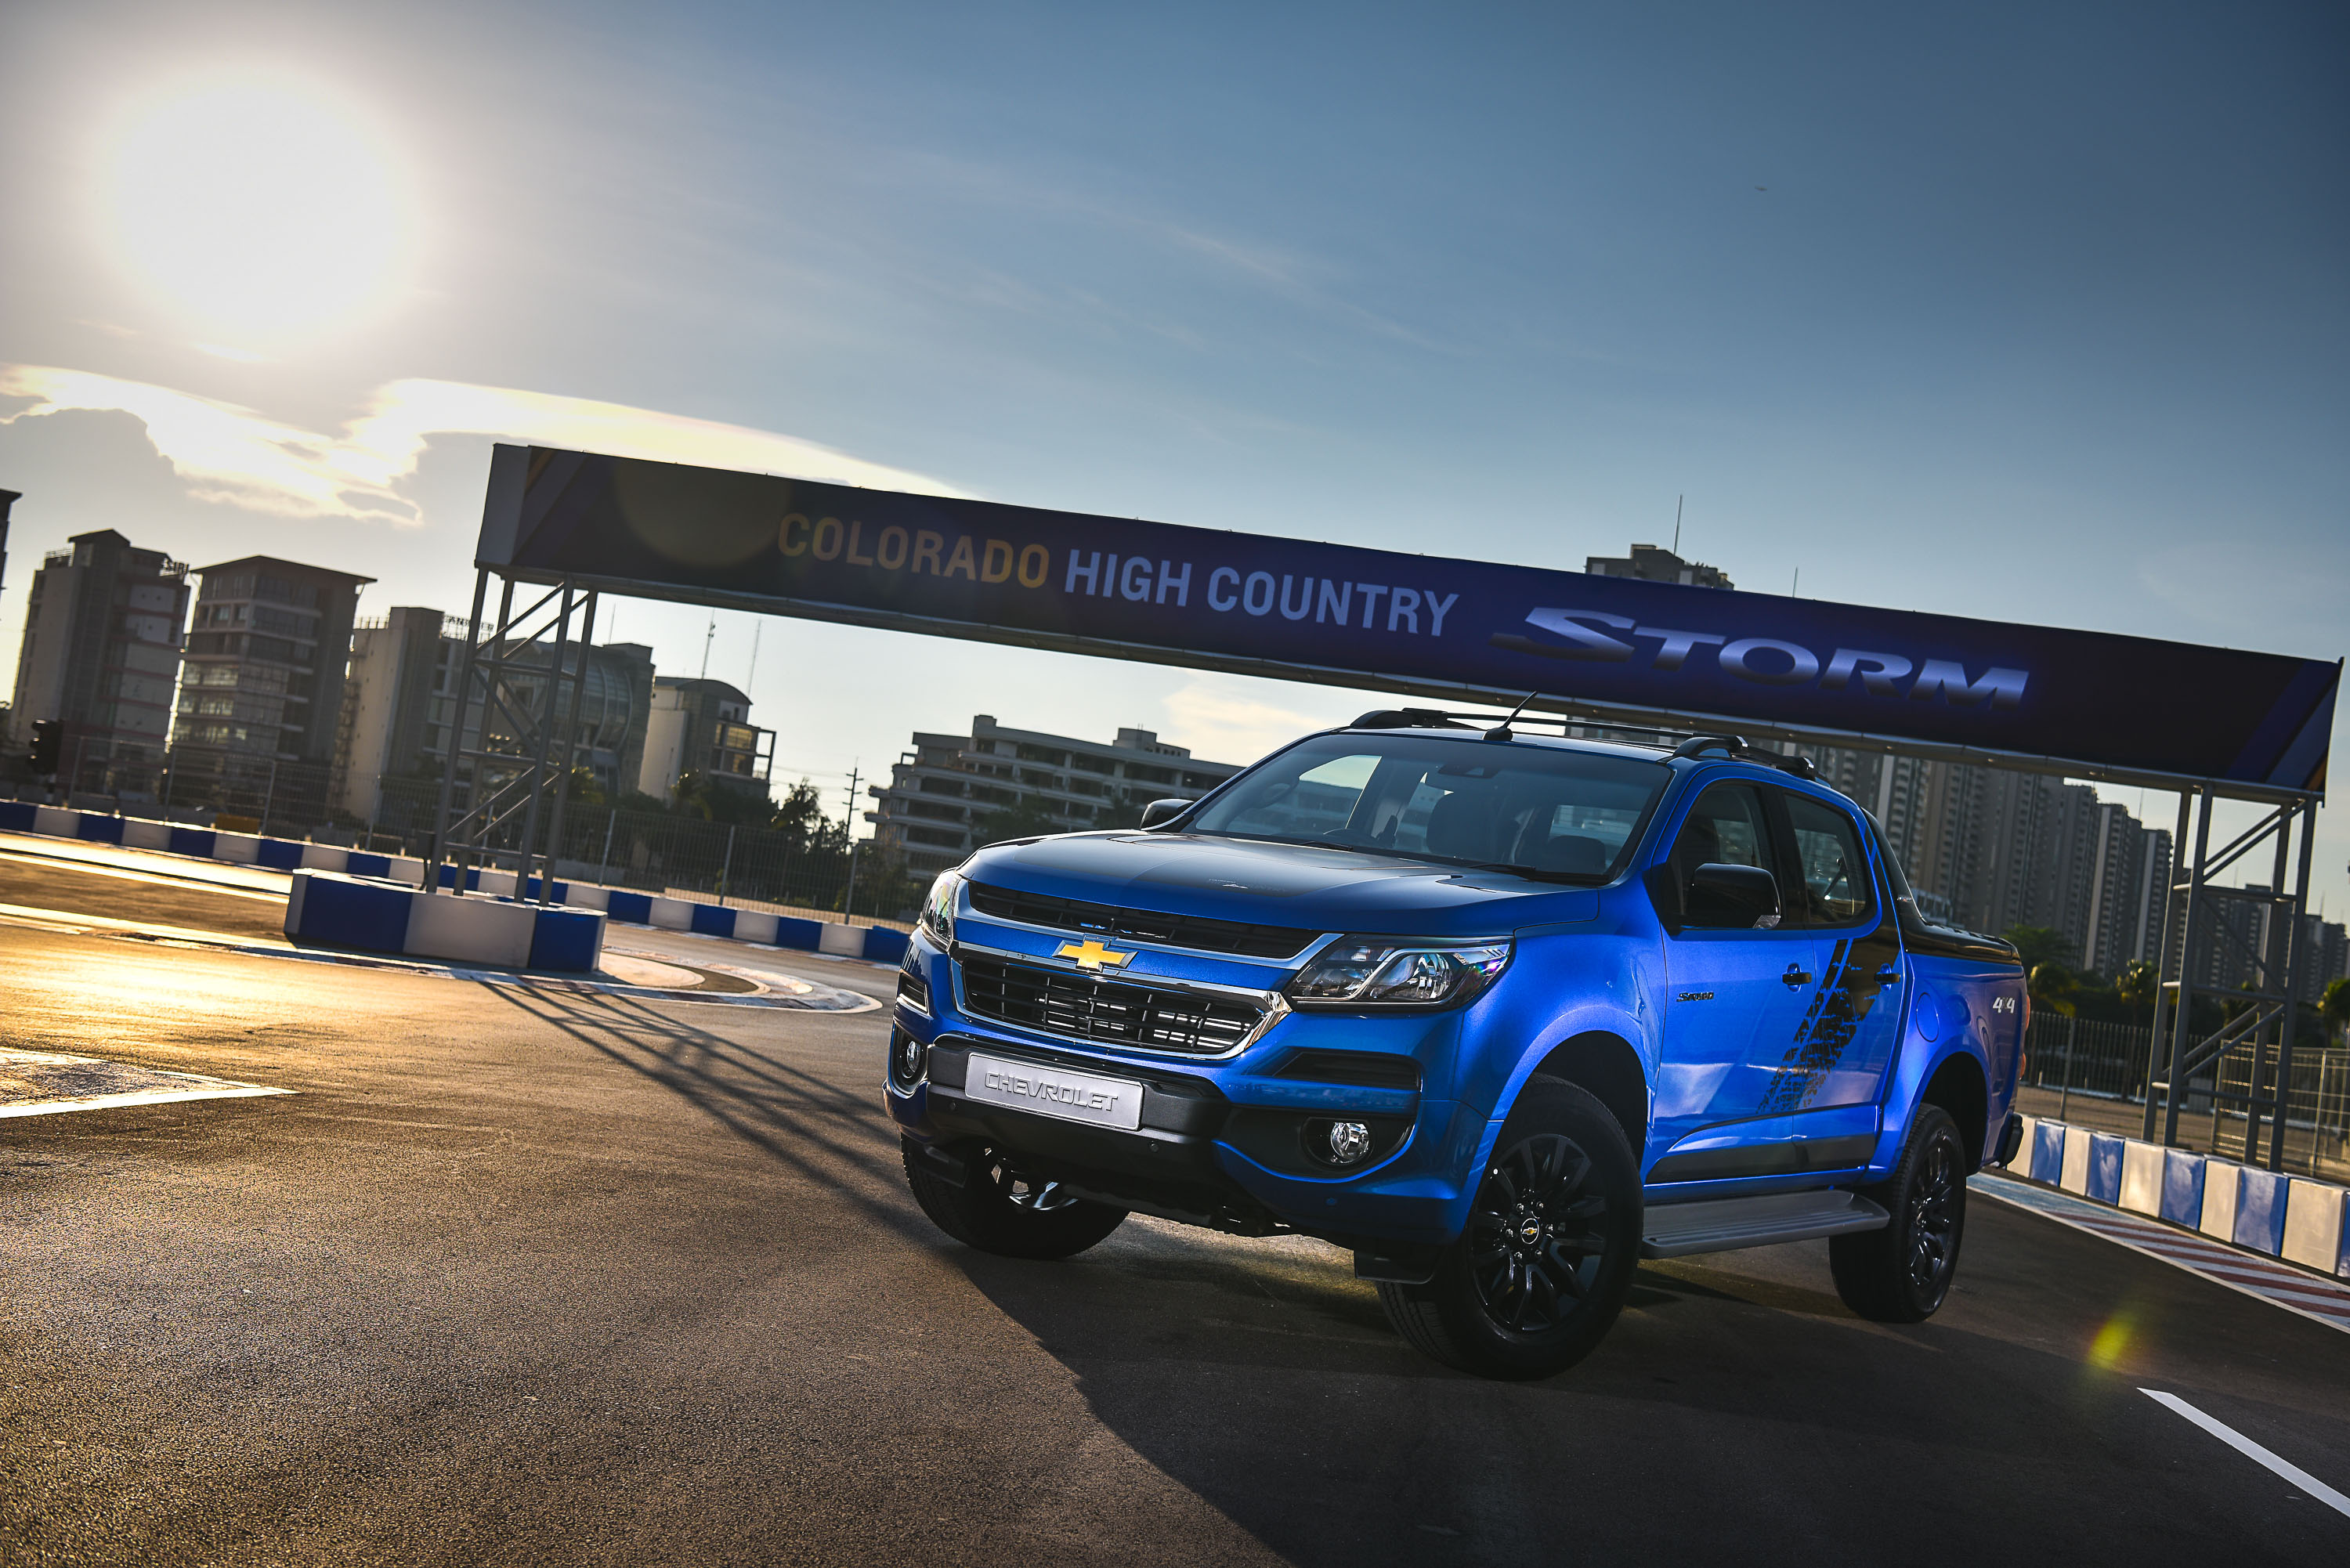 The chevrolet colorado high country storm 2017 is chevrolet s top of the line truck made in thailand the truck s captivating masculine design and rugged